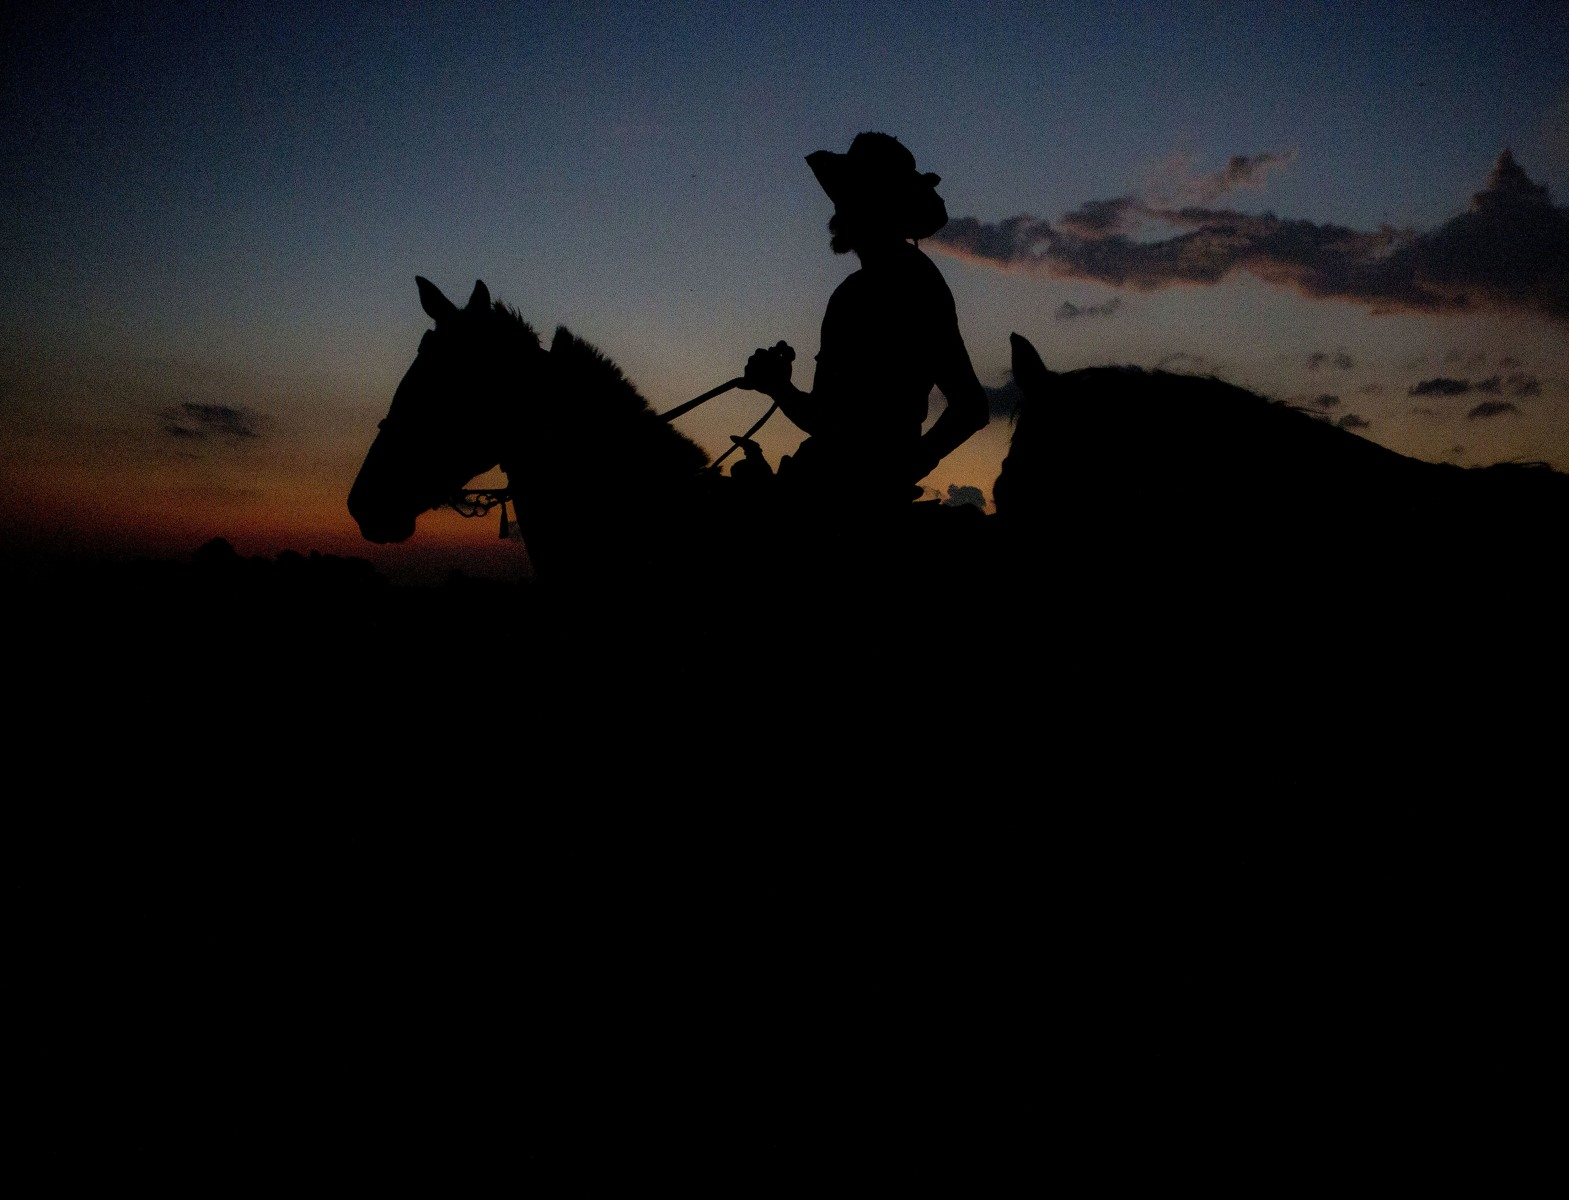 """Reggie Gough rides his horse Suzy while his other horse Mustang stays close with a halter carrying the horses to their resting stop. """"I'm not a cowboy, I'm a horseman, cowboy's chase cows, I give the cowboys a horse with tender hooves and a sore back, plus black man are afraid of ropes."""" Reggie Gough said while drinking a beer and saddling up his horses at the triple cross ranch. September 19th, 2017."""